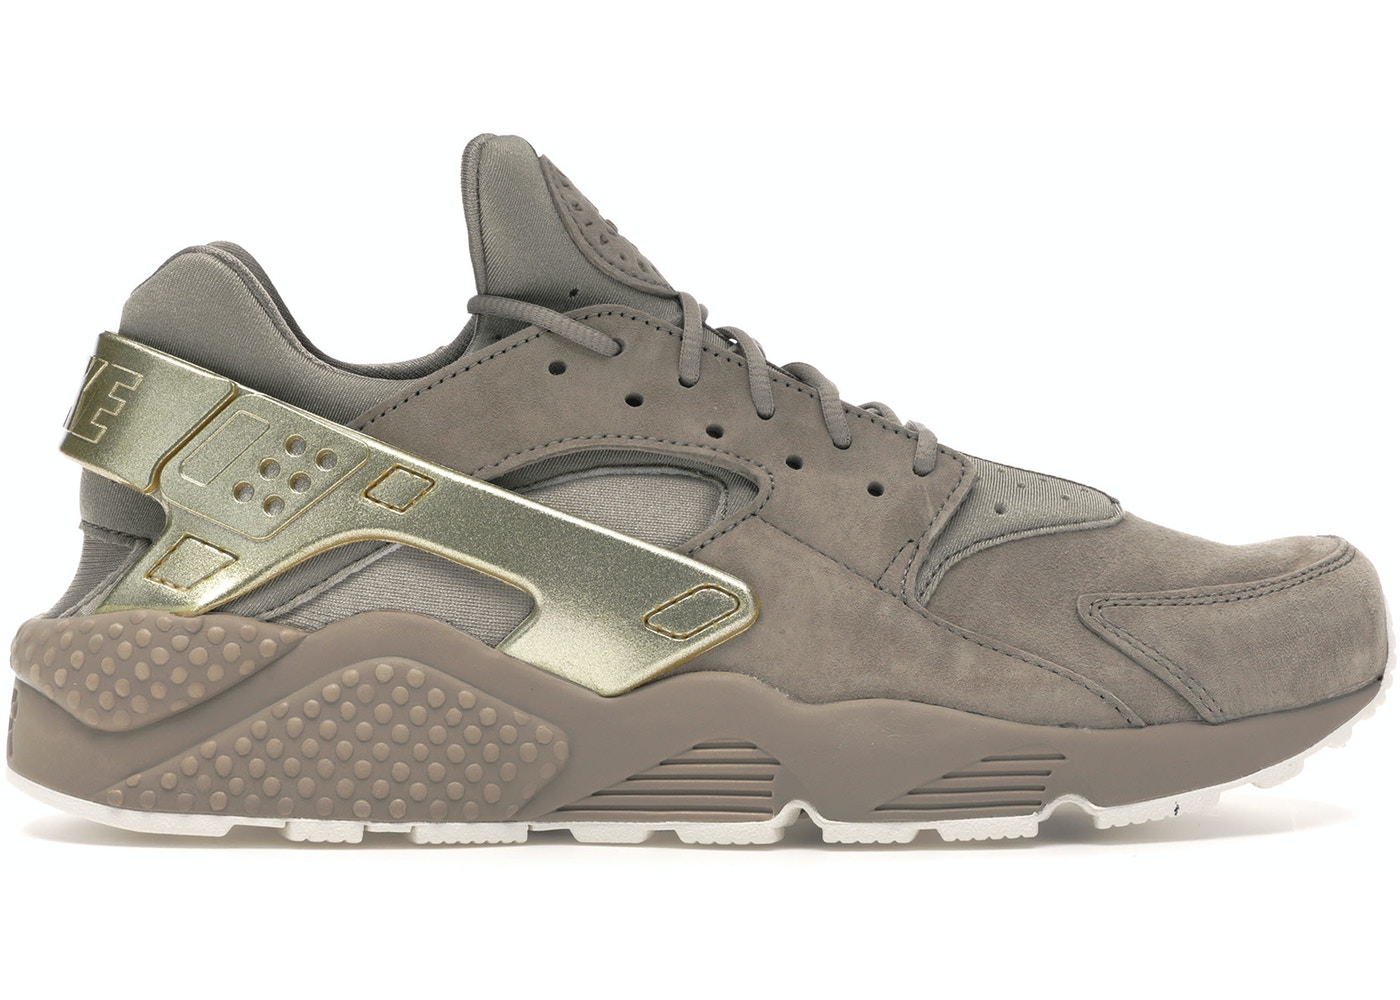 Educación moral Opresor editorial  Nike Air Huarache Run Gold Rush - 704830-201